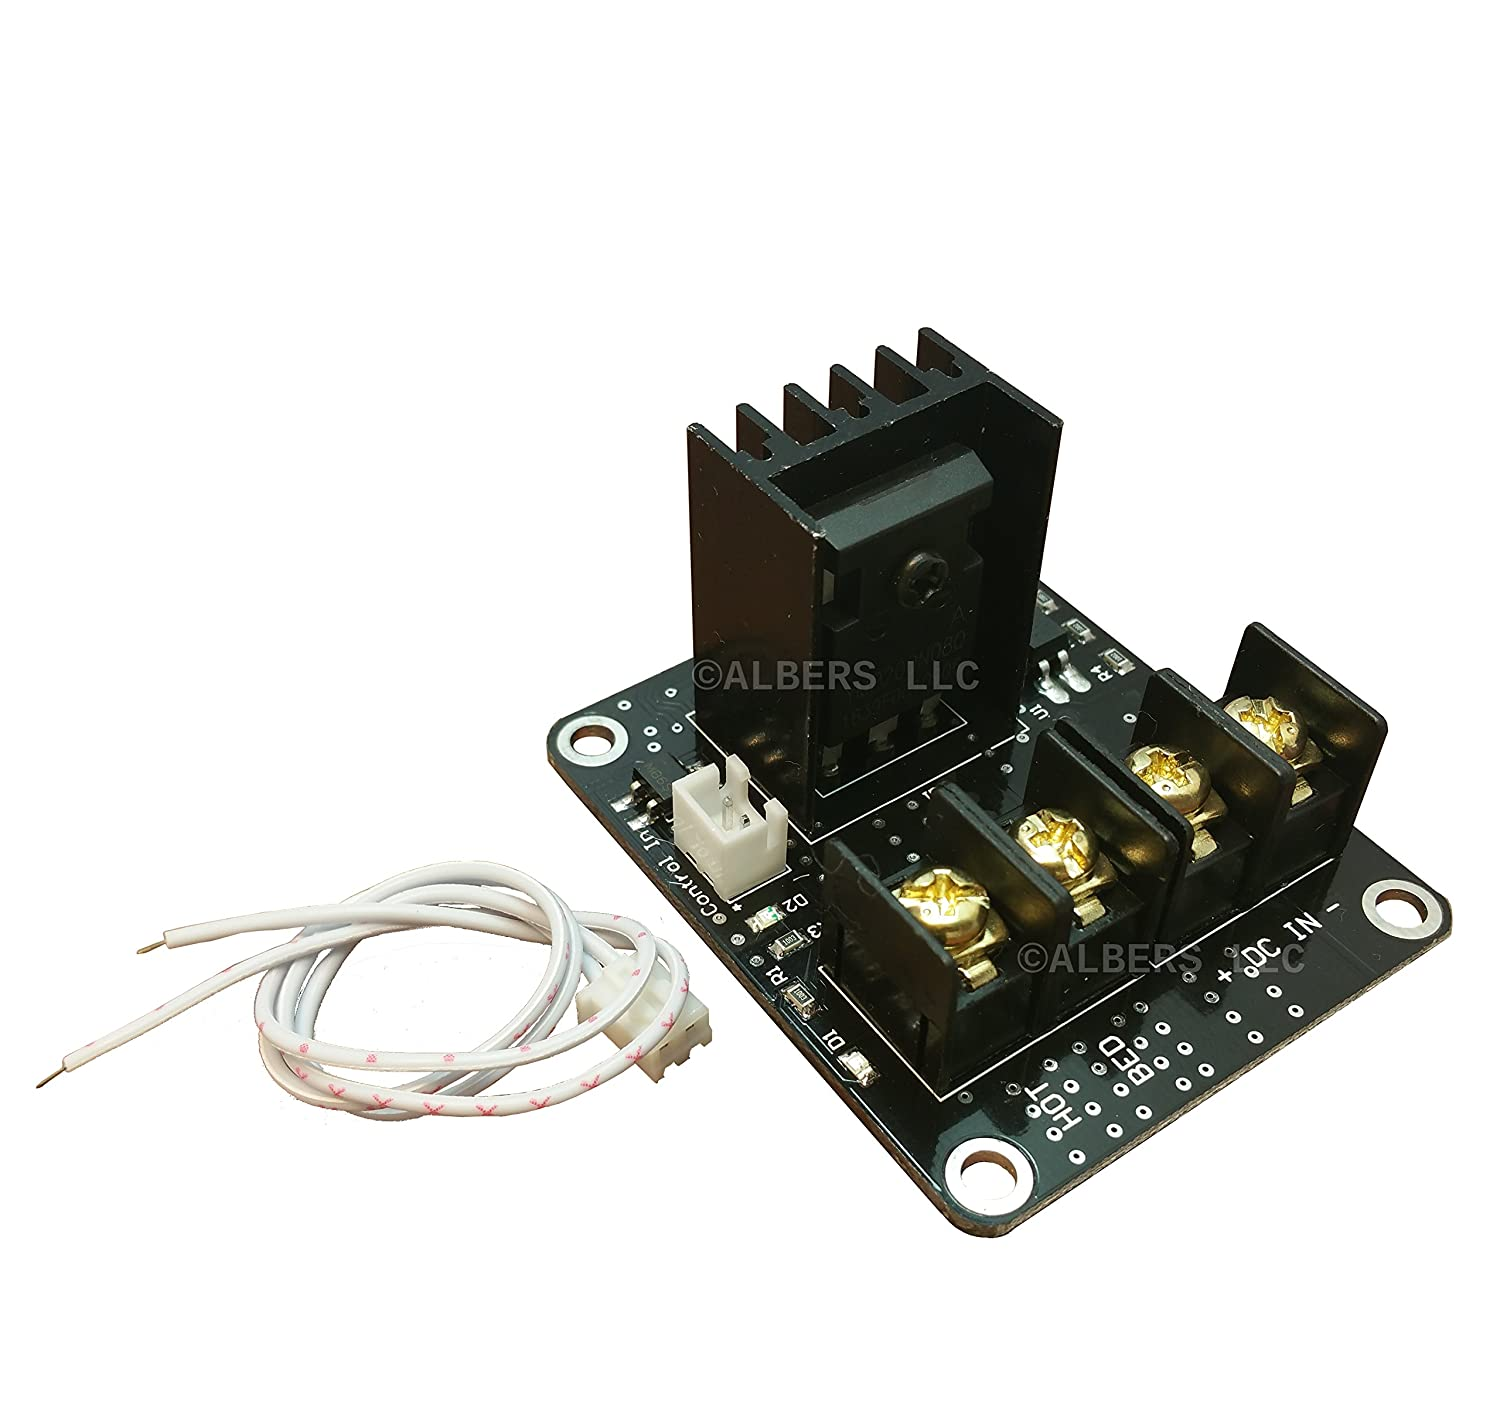 [initeq] MOSFET Board for 3D Printer Heat Bed Controller 210A High Current  for Anet A8 and Wanhao i3 and Others